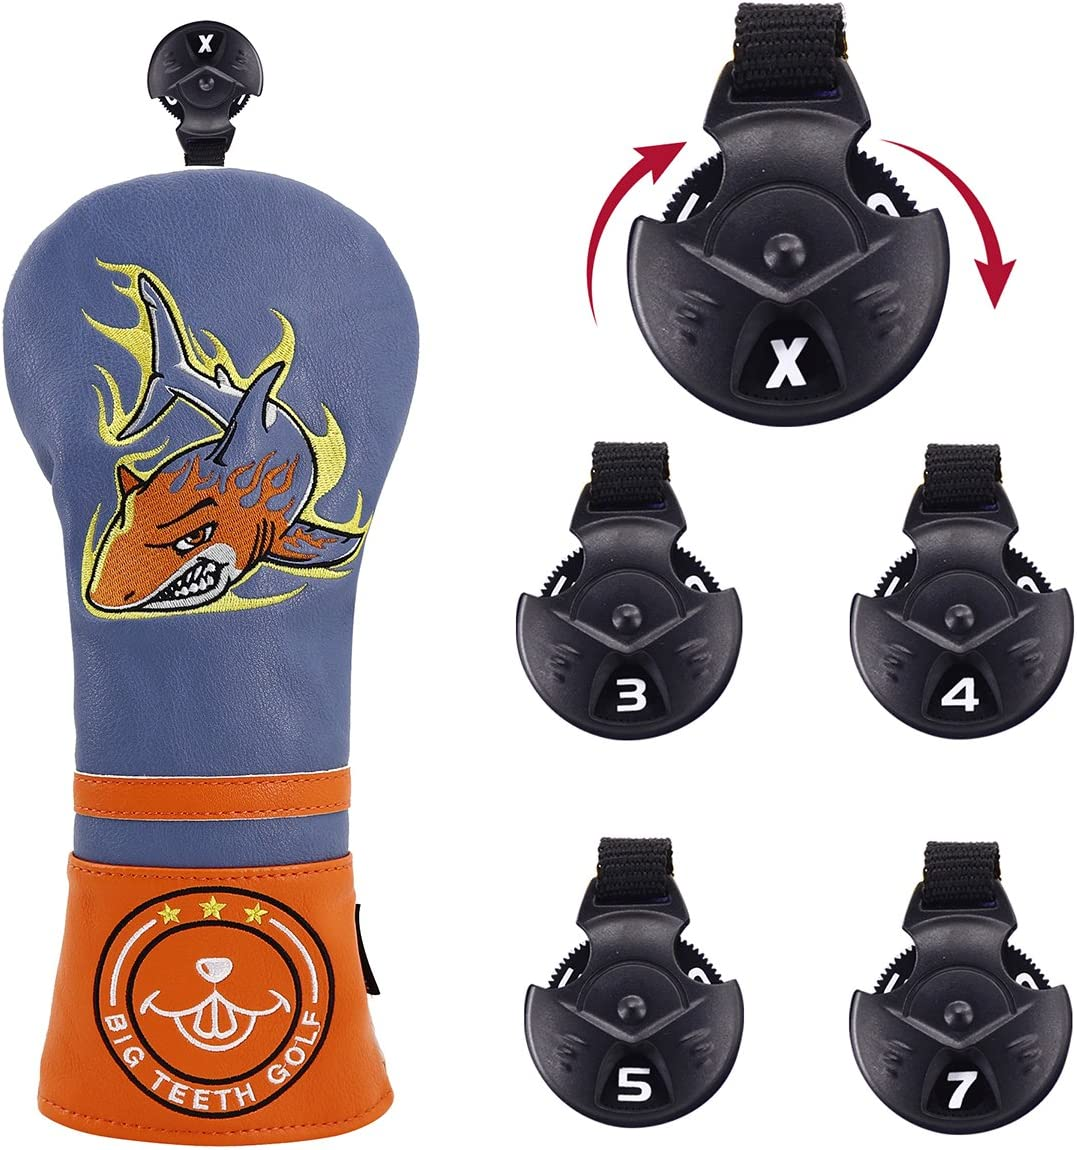 Big Teeth Golf Head Covers Fairway Protector Headcover PU Leather with Interchangeable Number Tag